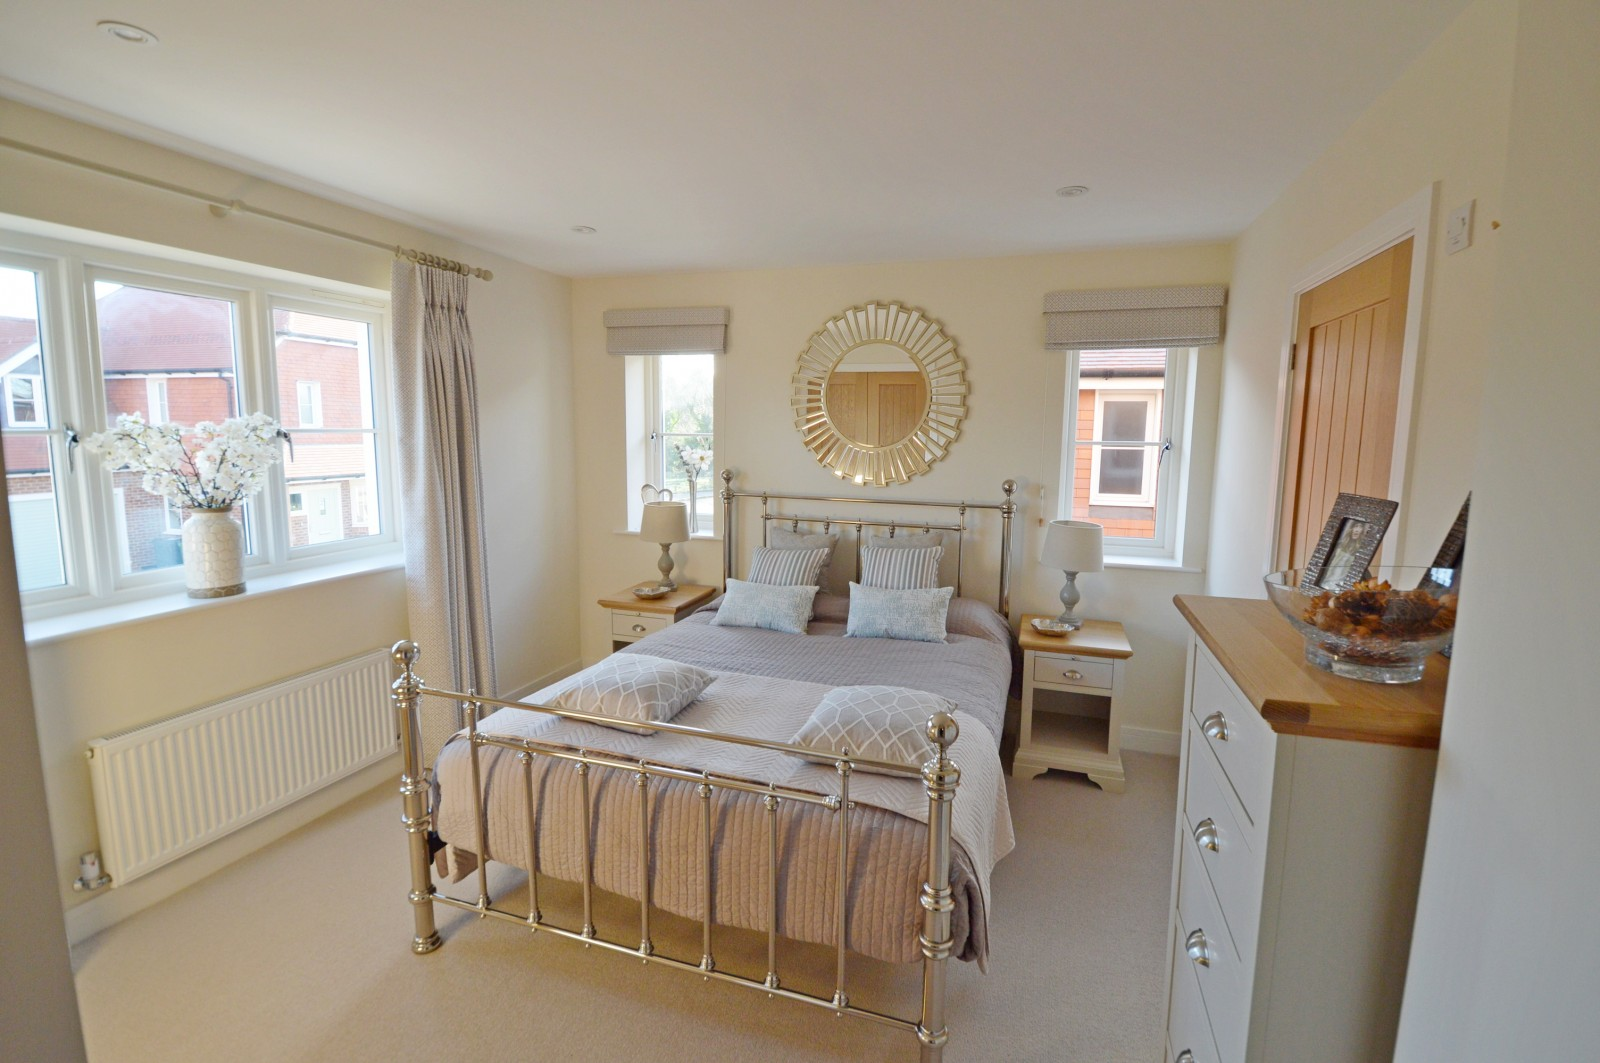 Bedroom 1 Property to let in Ropley